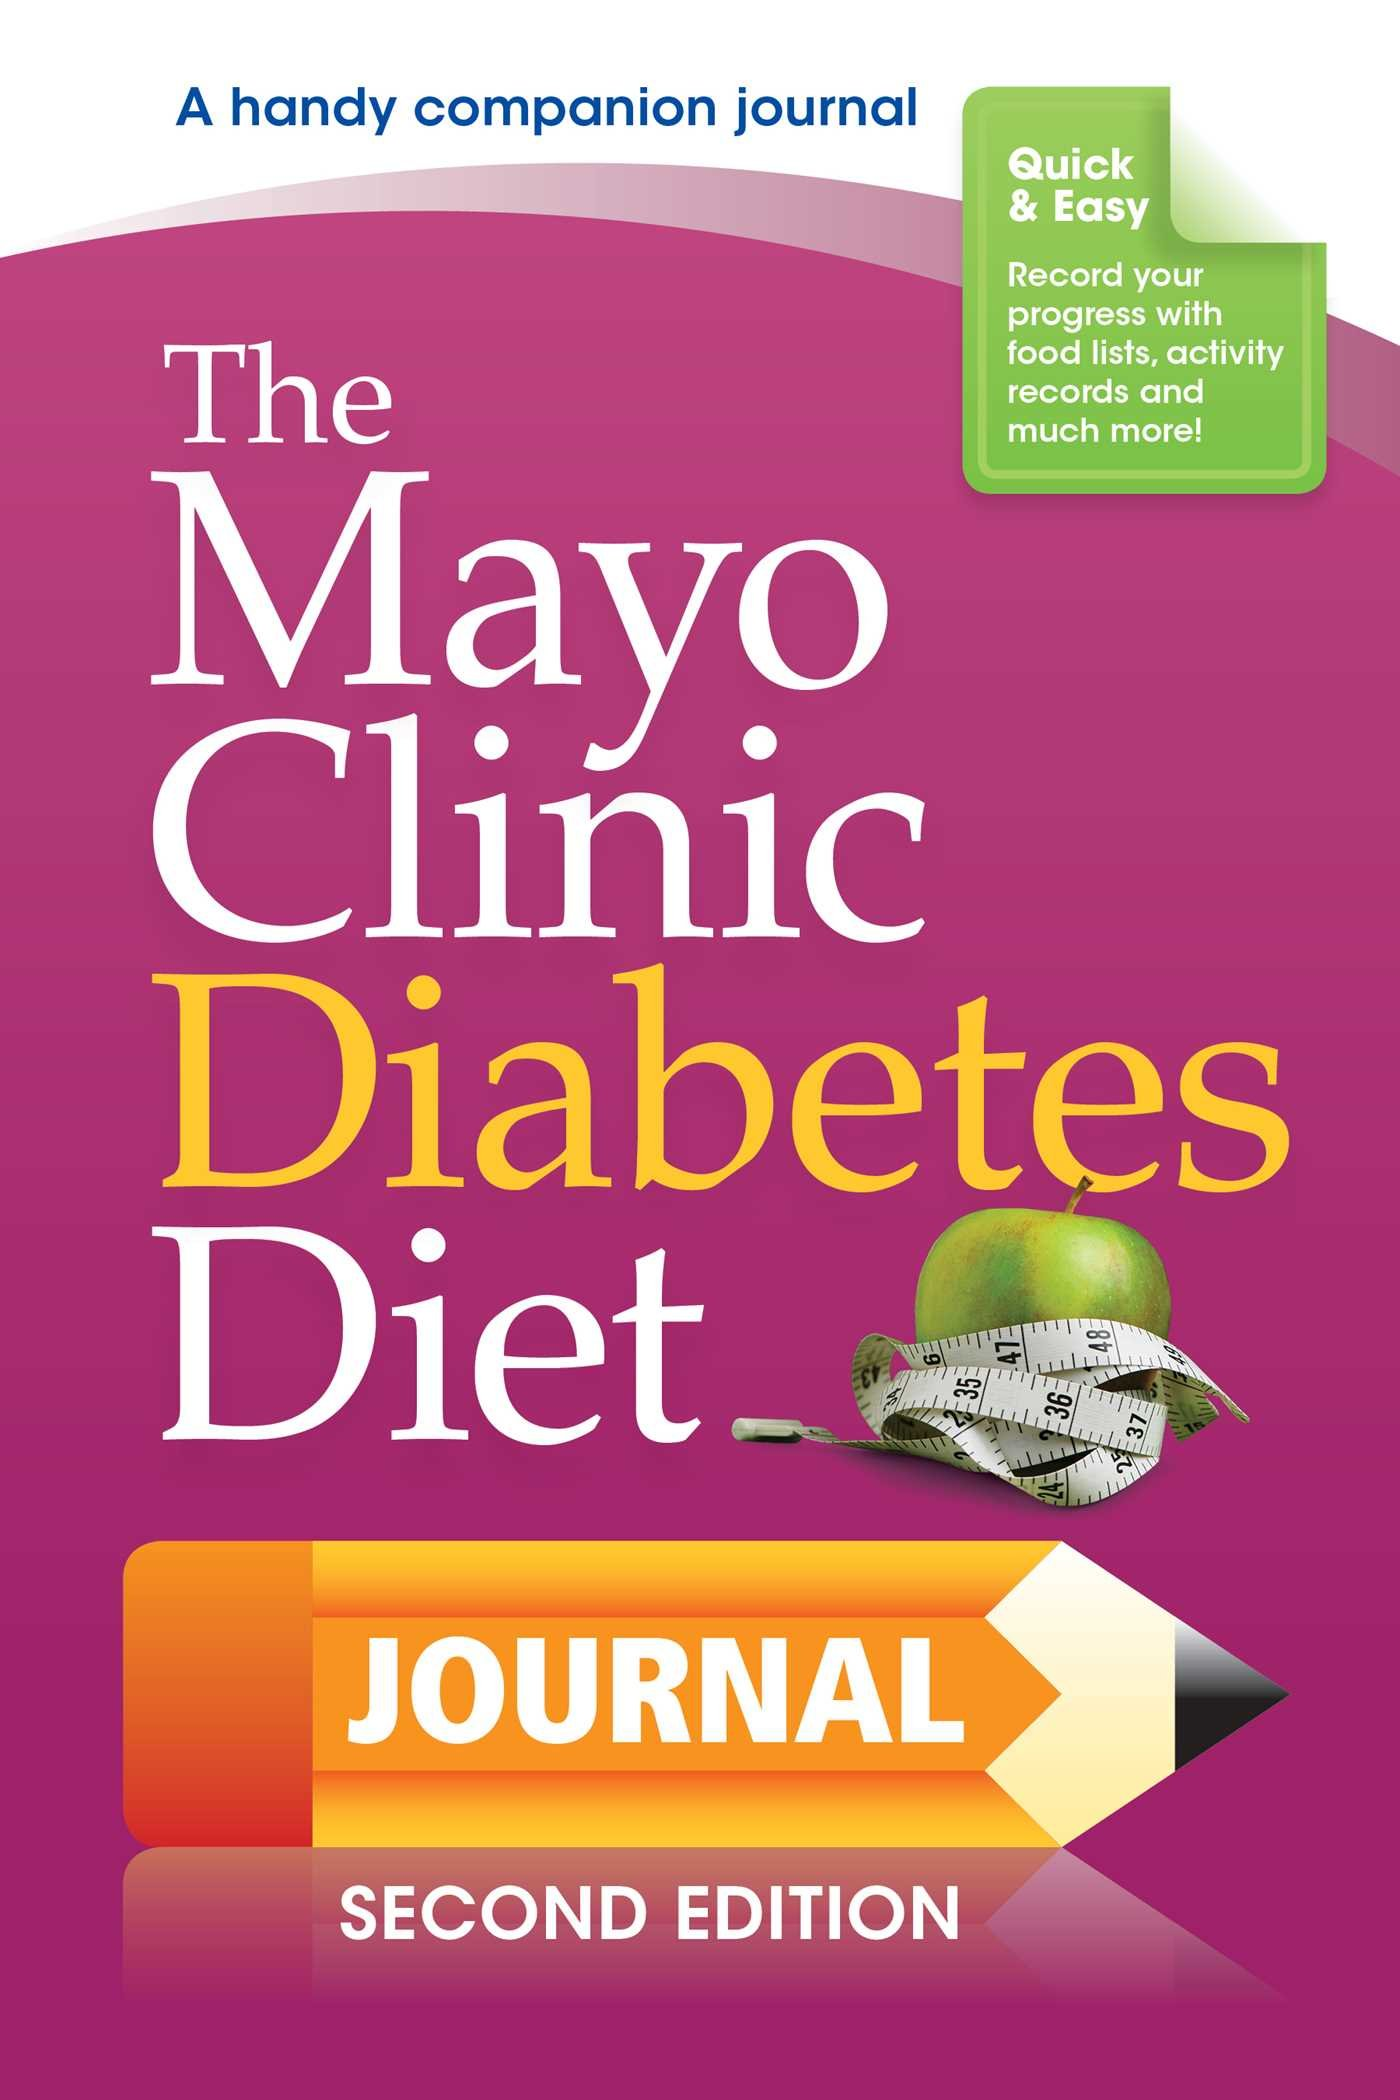 what is the mayo clinic diabetes diet?